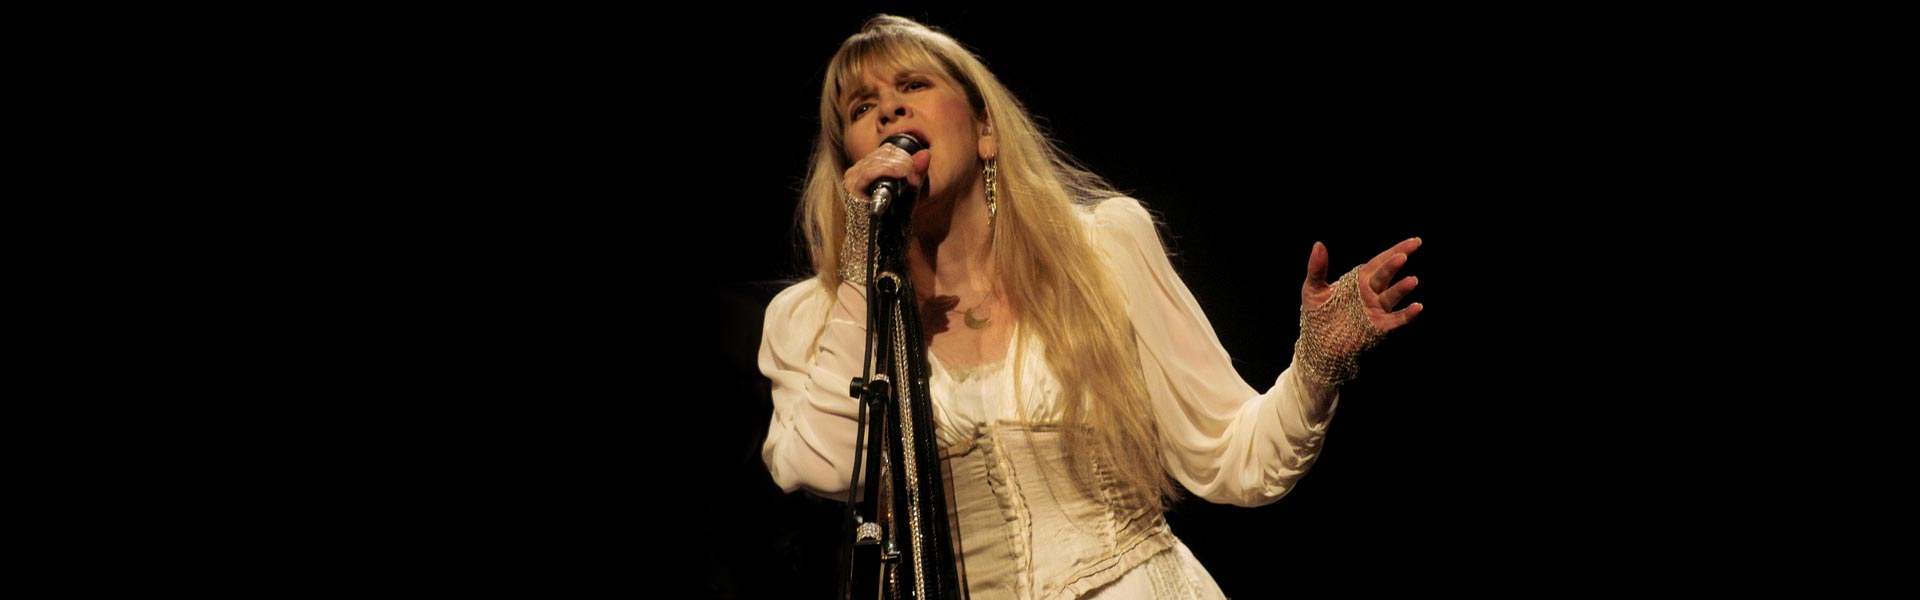 Music | Stevie Nicks